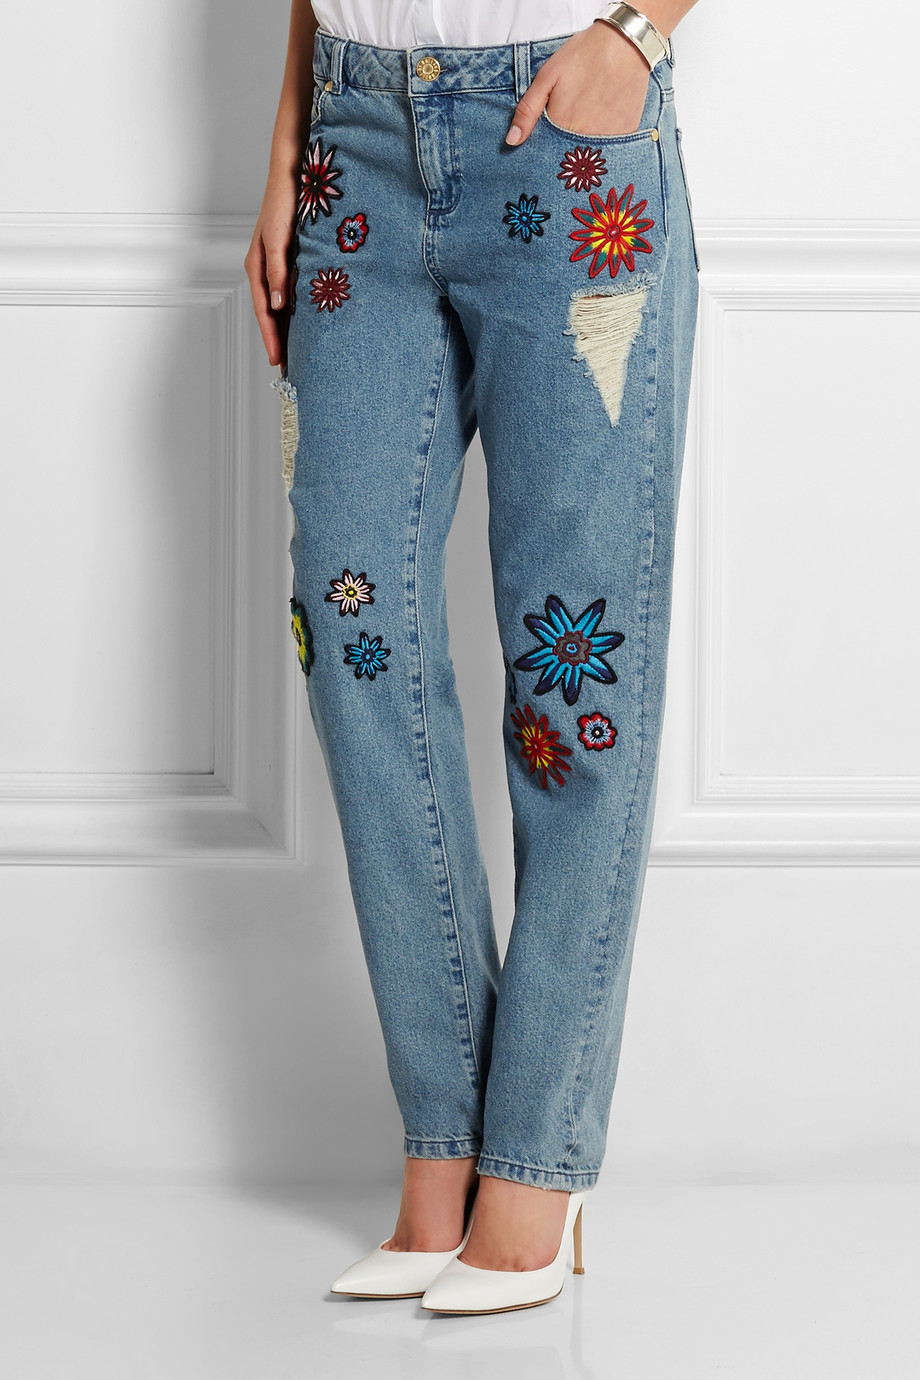 HOUSE OF HOLLAND - Jean